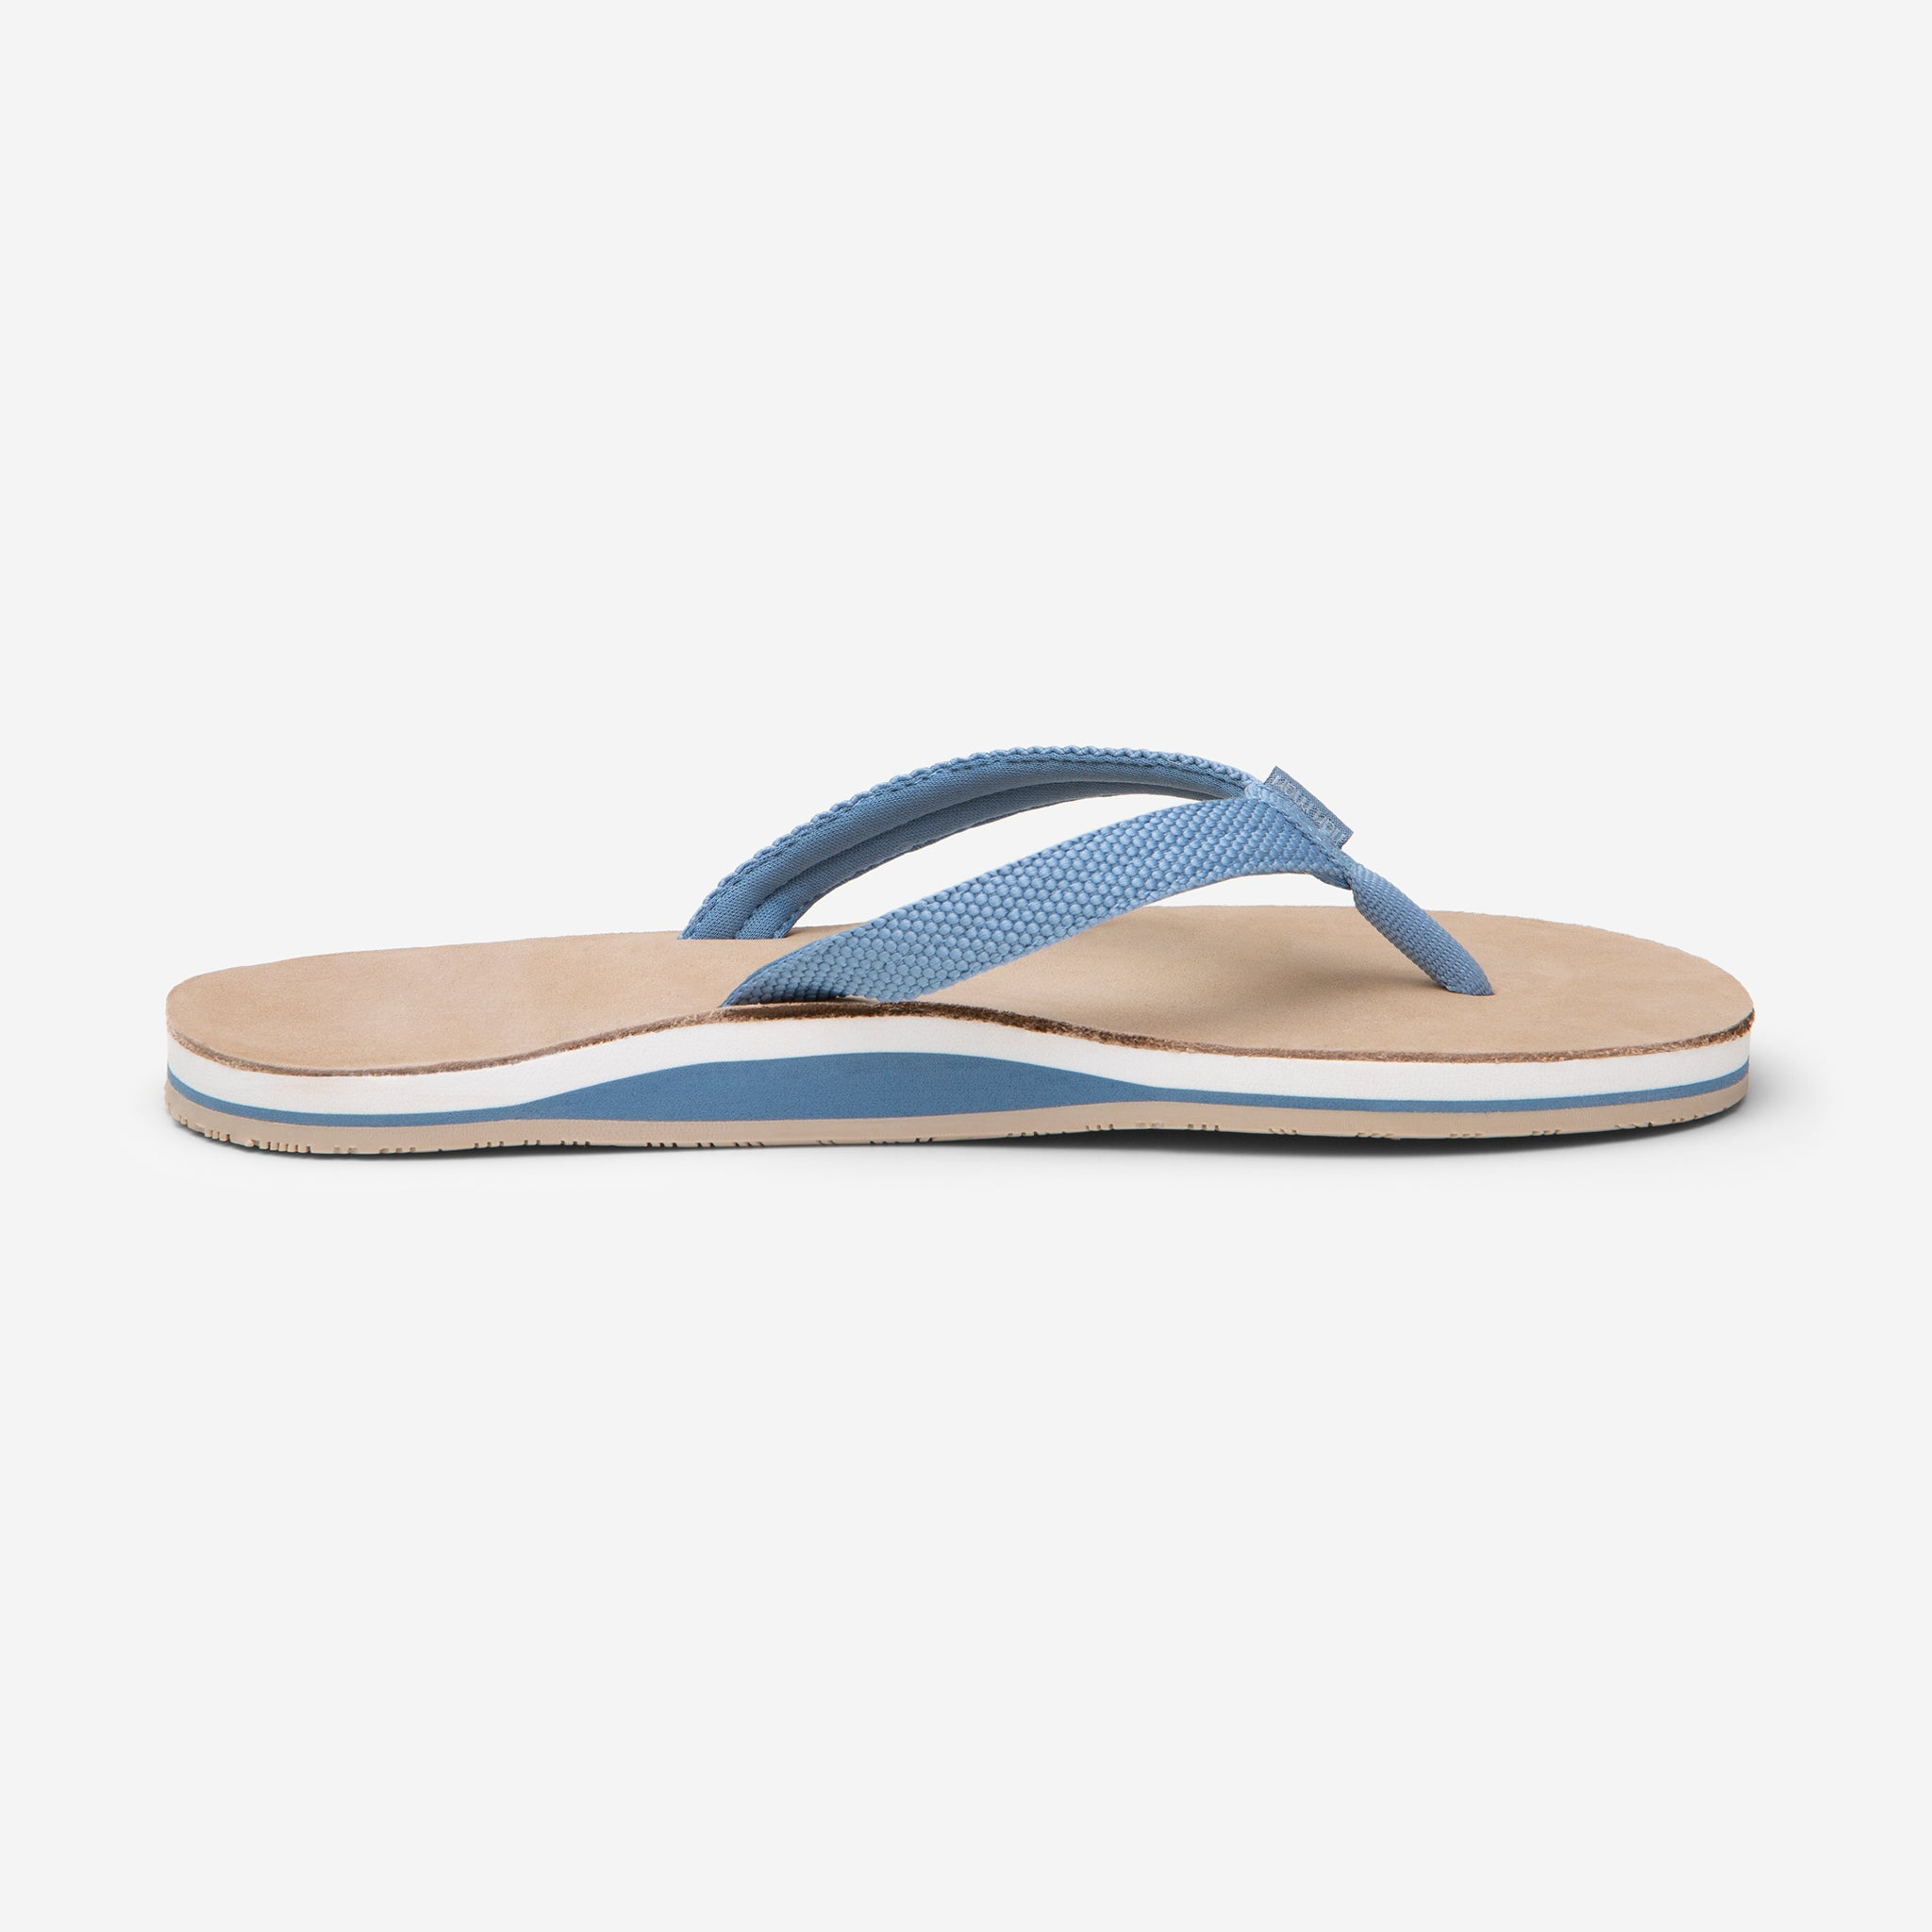 side profile of Hari Mari Women's Scouts flip flops in dusty blue/sand on white background